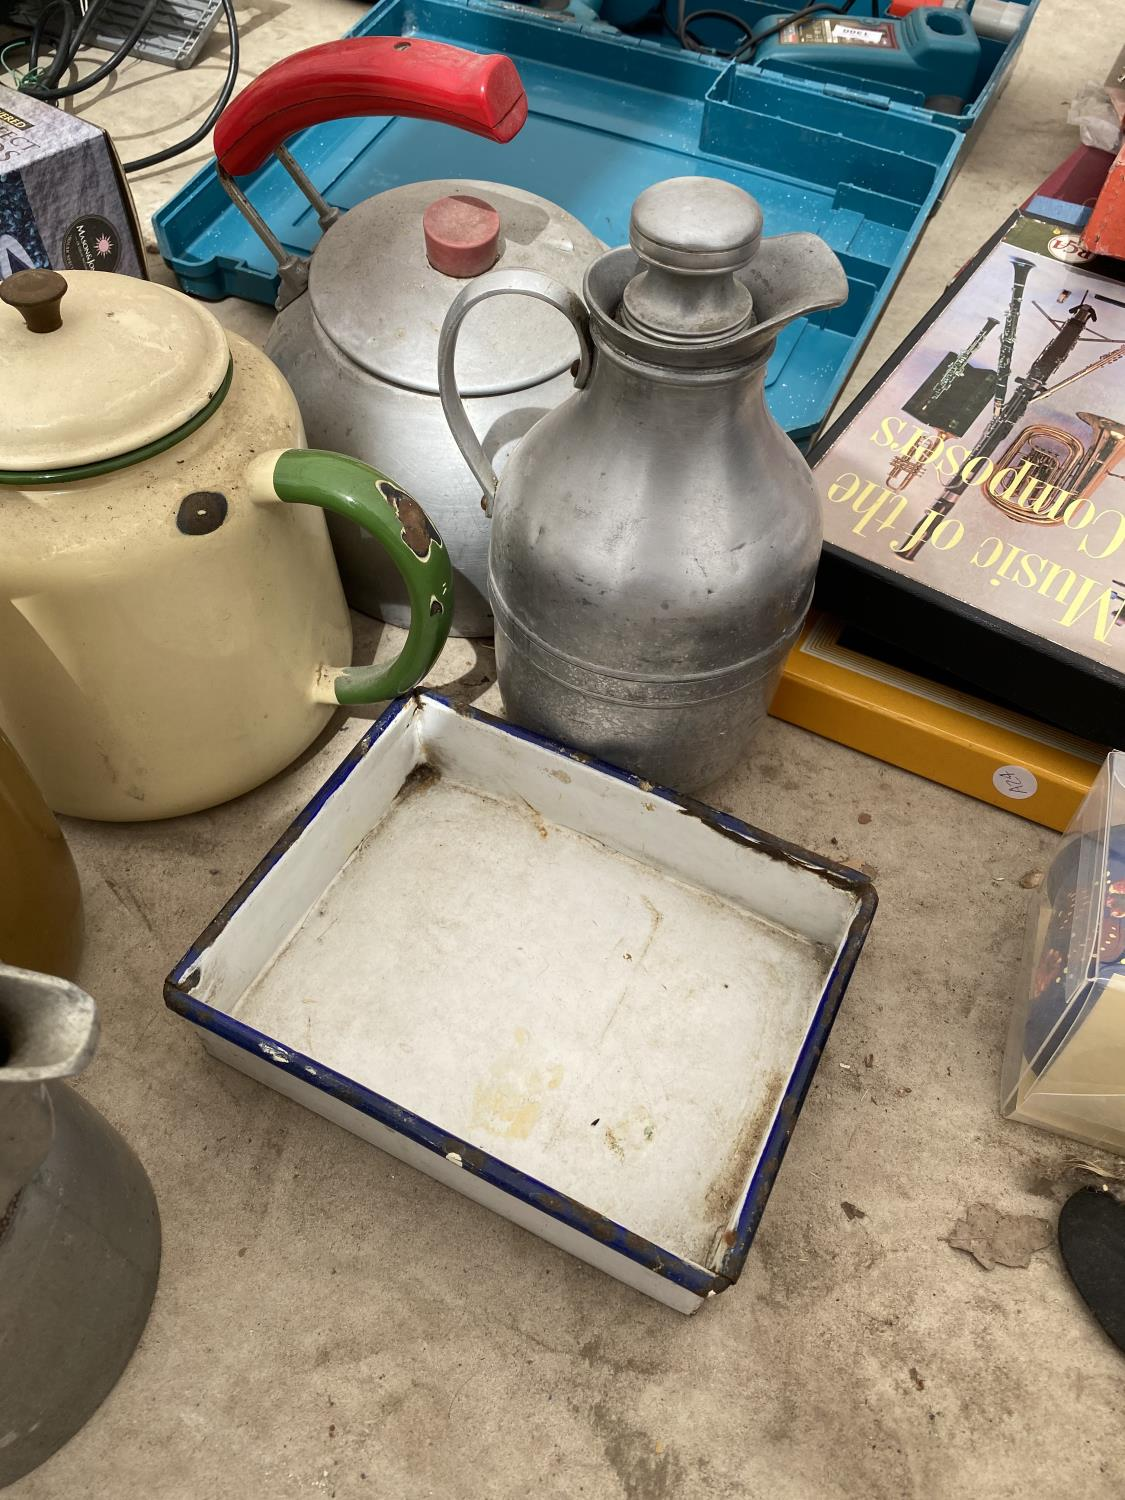 AN ASSORTMENT OF ITEMS TO INCLUDE KETTLES AND A SODA SYPHON ETC - Image 2 of 4